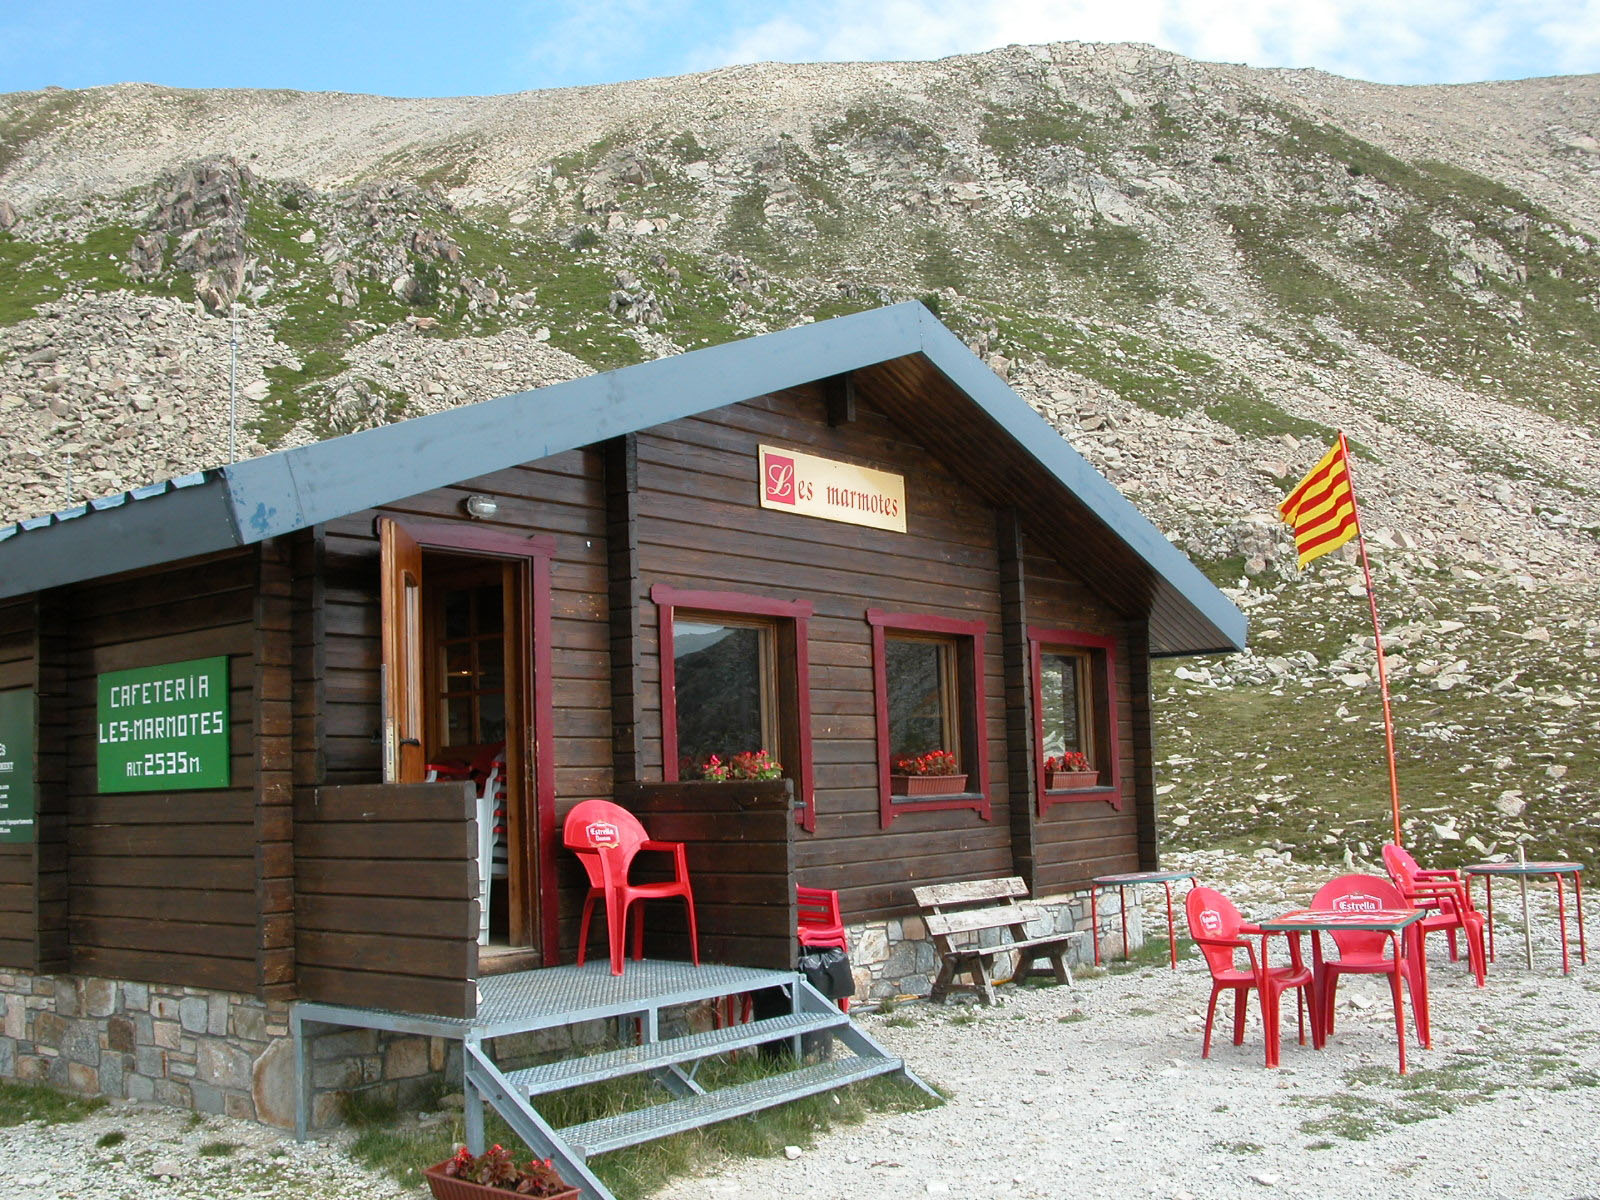 Les Marmotes Cafe